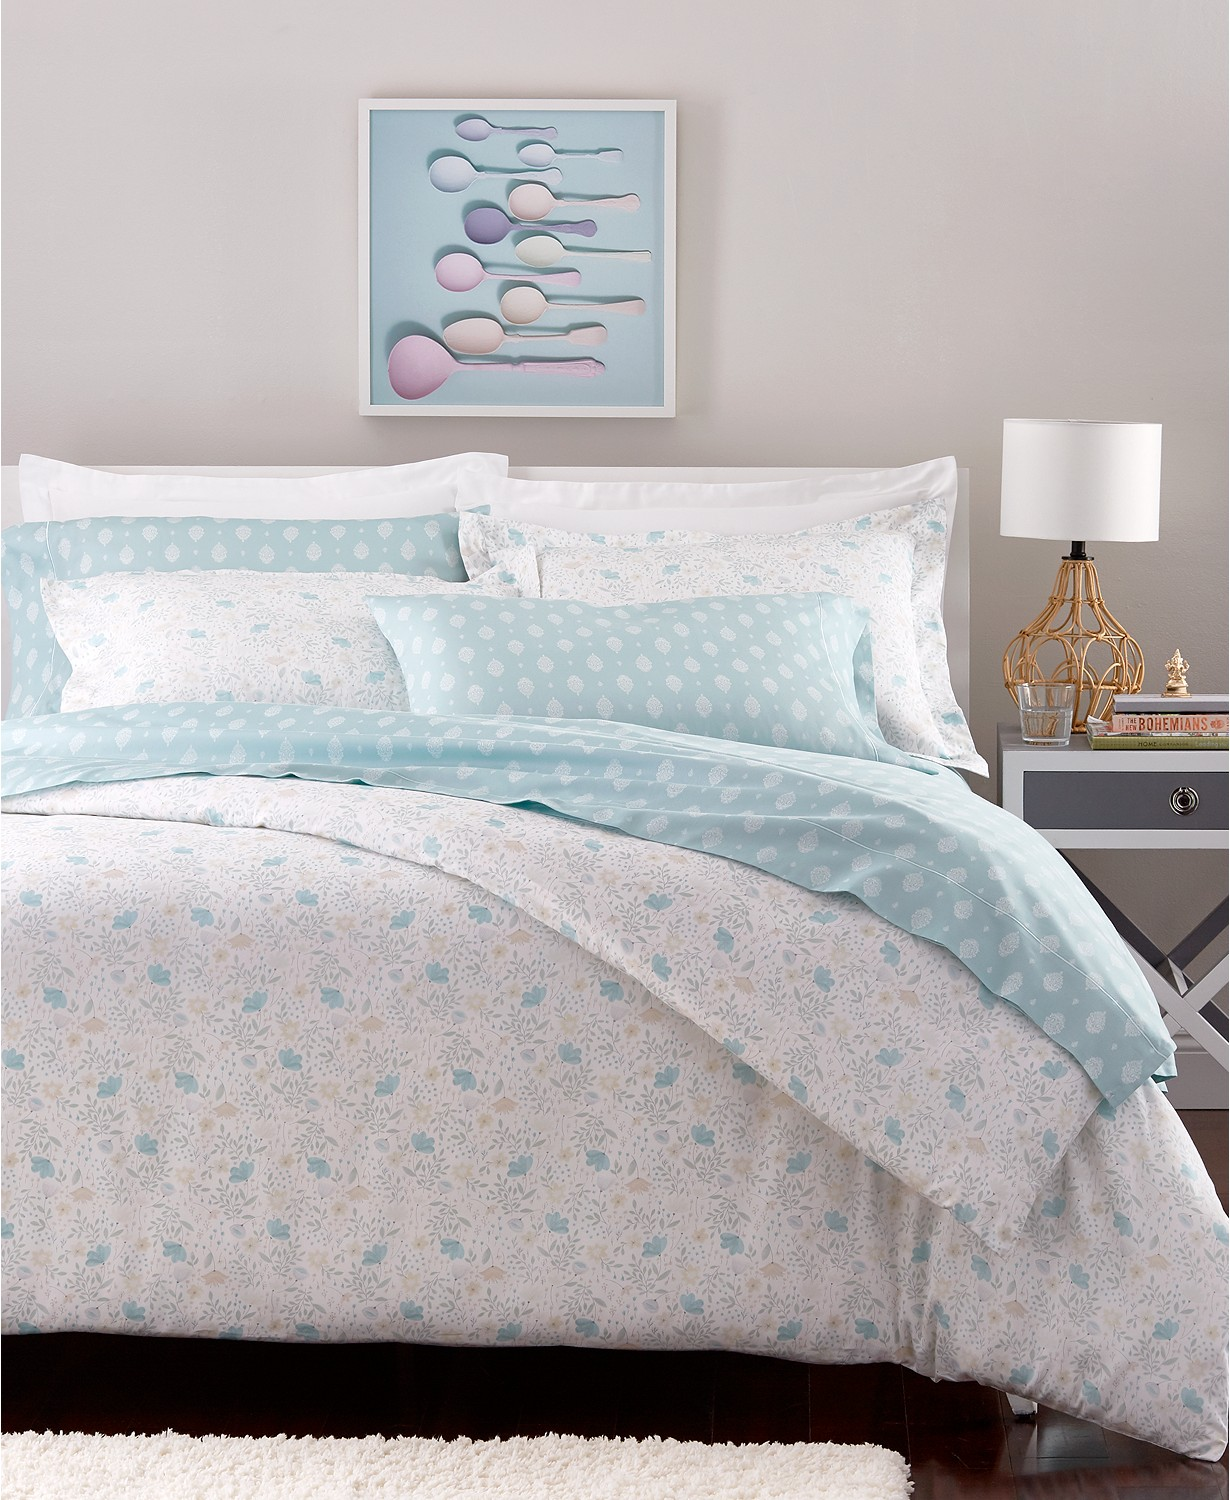 Goodful Bedding Collection, 300 Thread Count Hygro Cotton, Created for Macy's